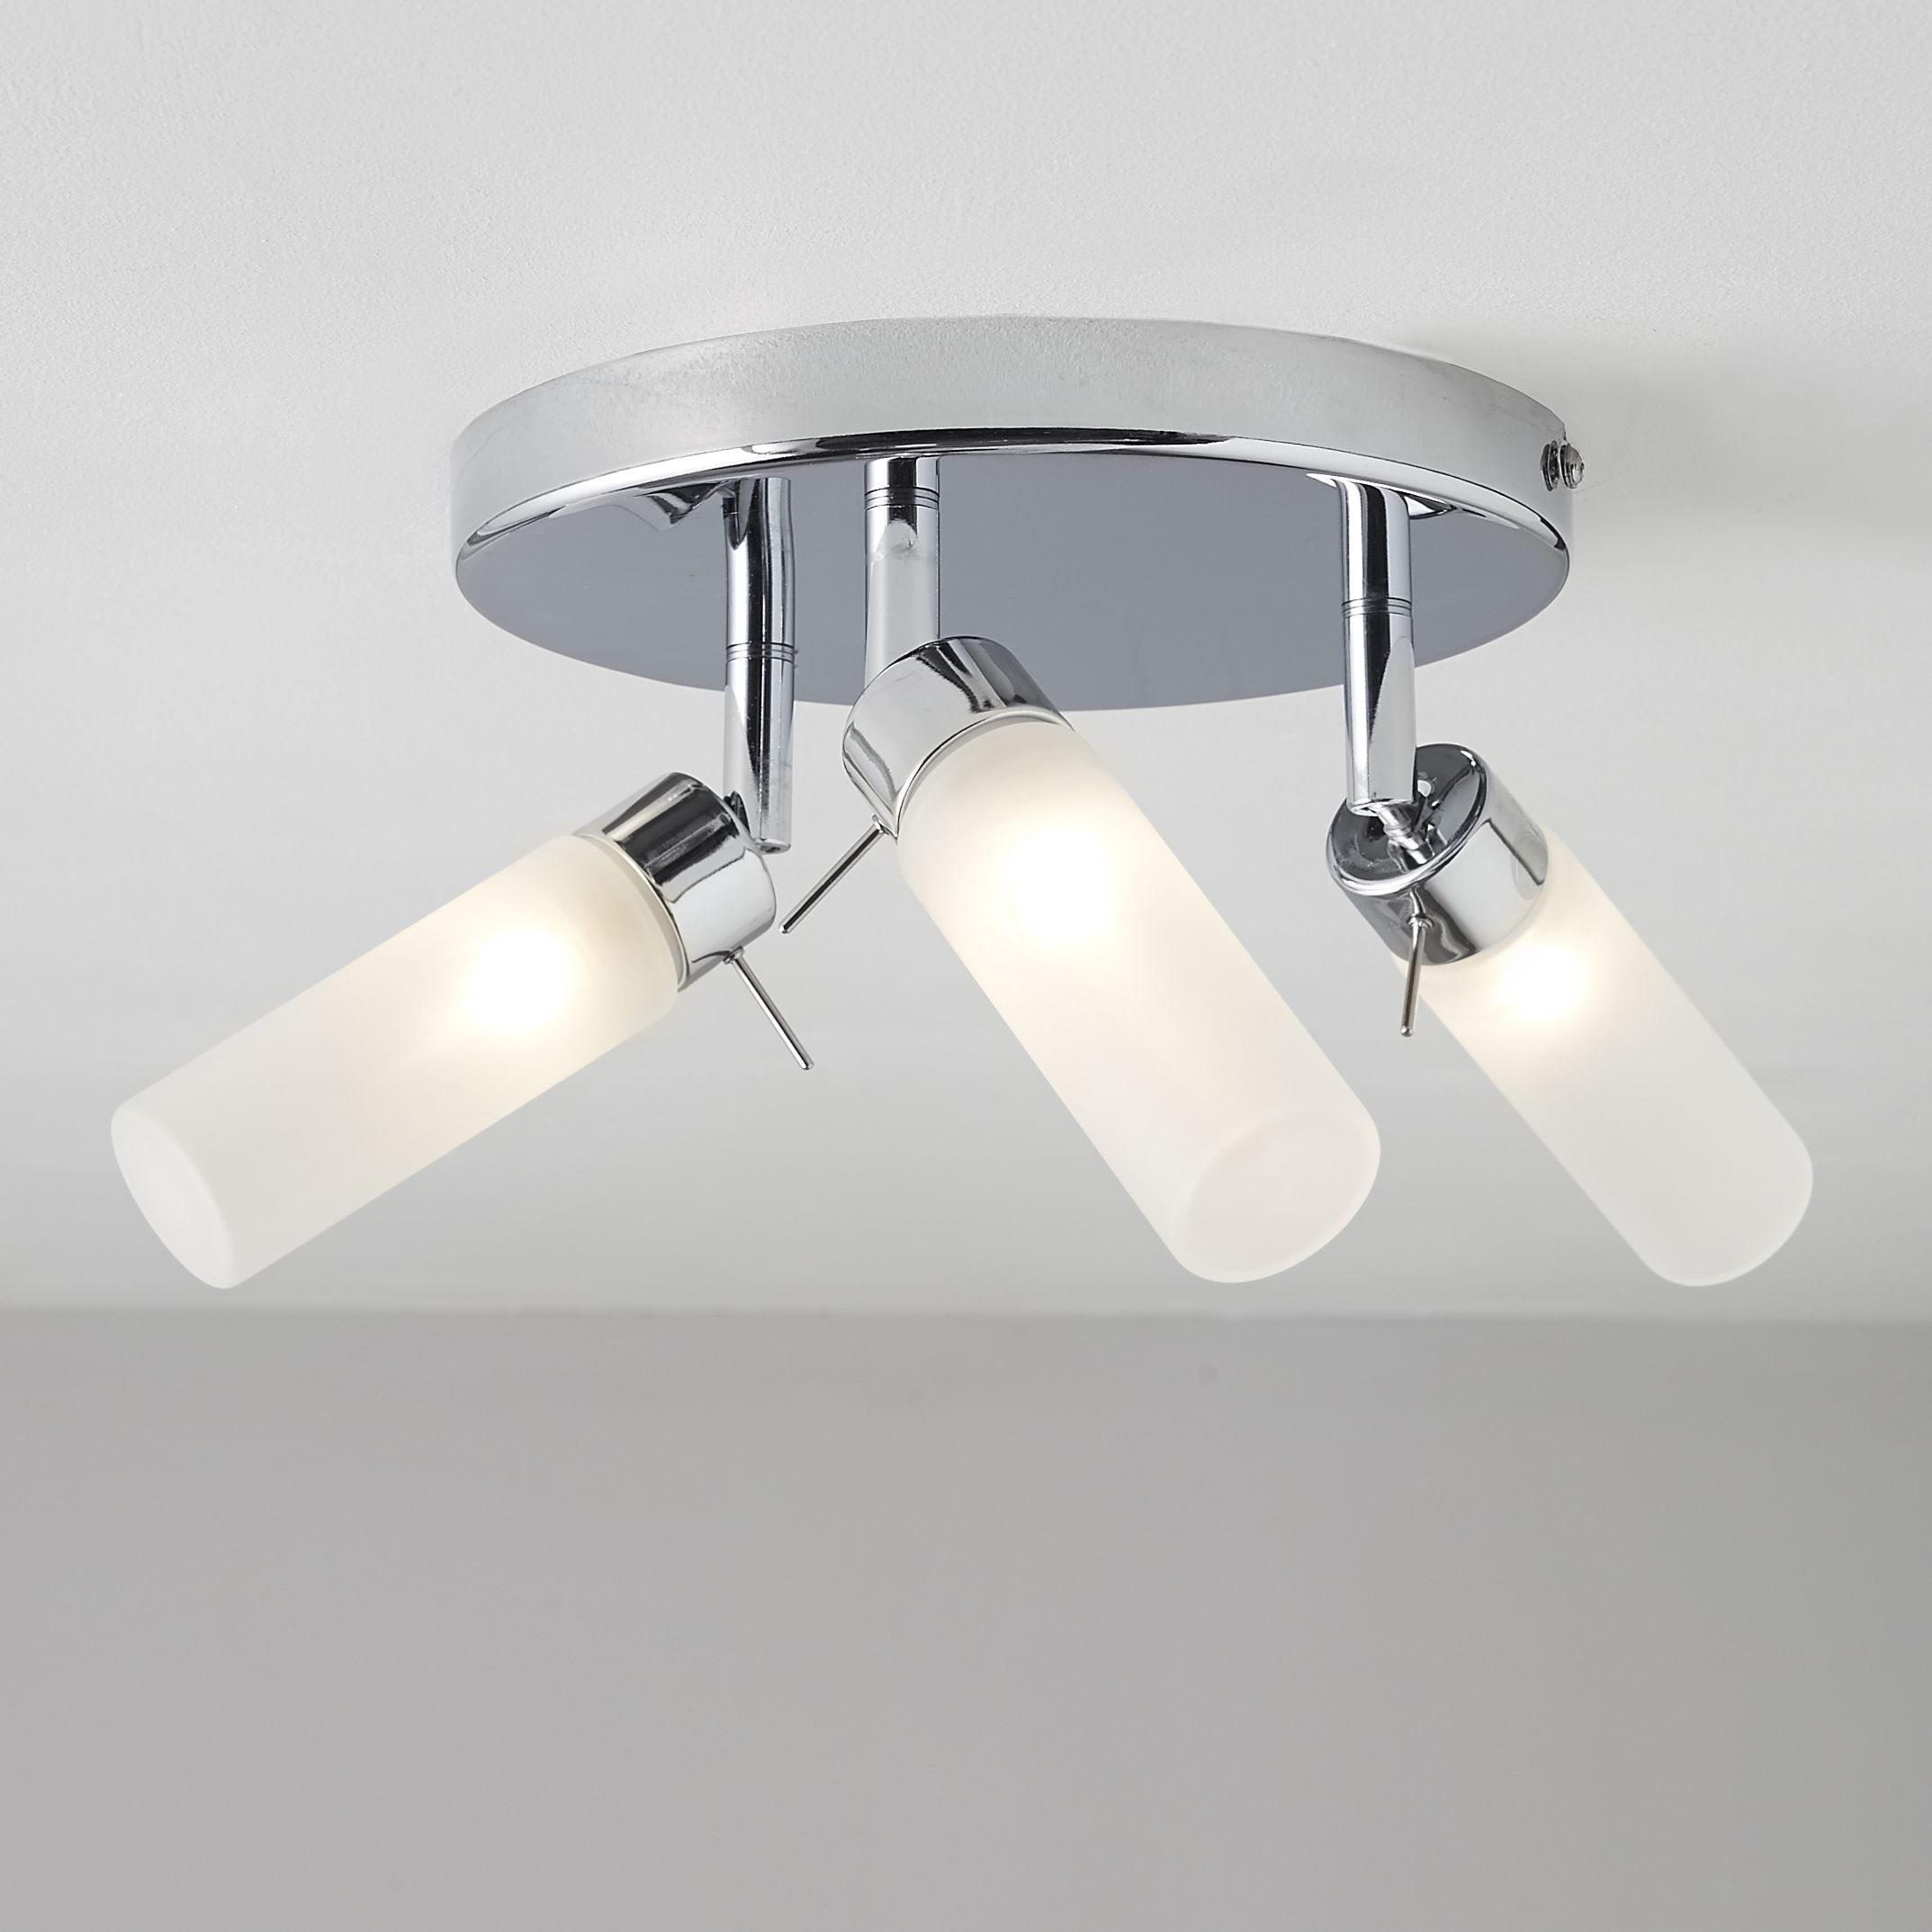 Ceiling lights for bathrooms